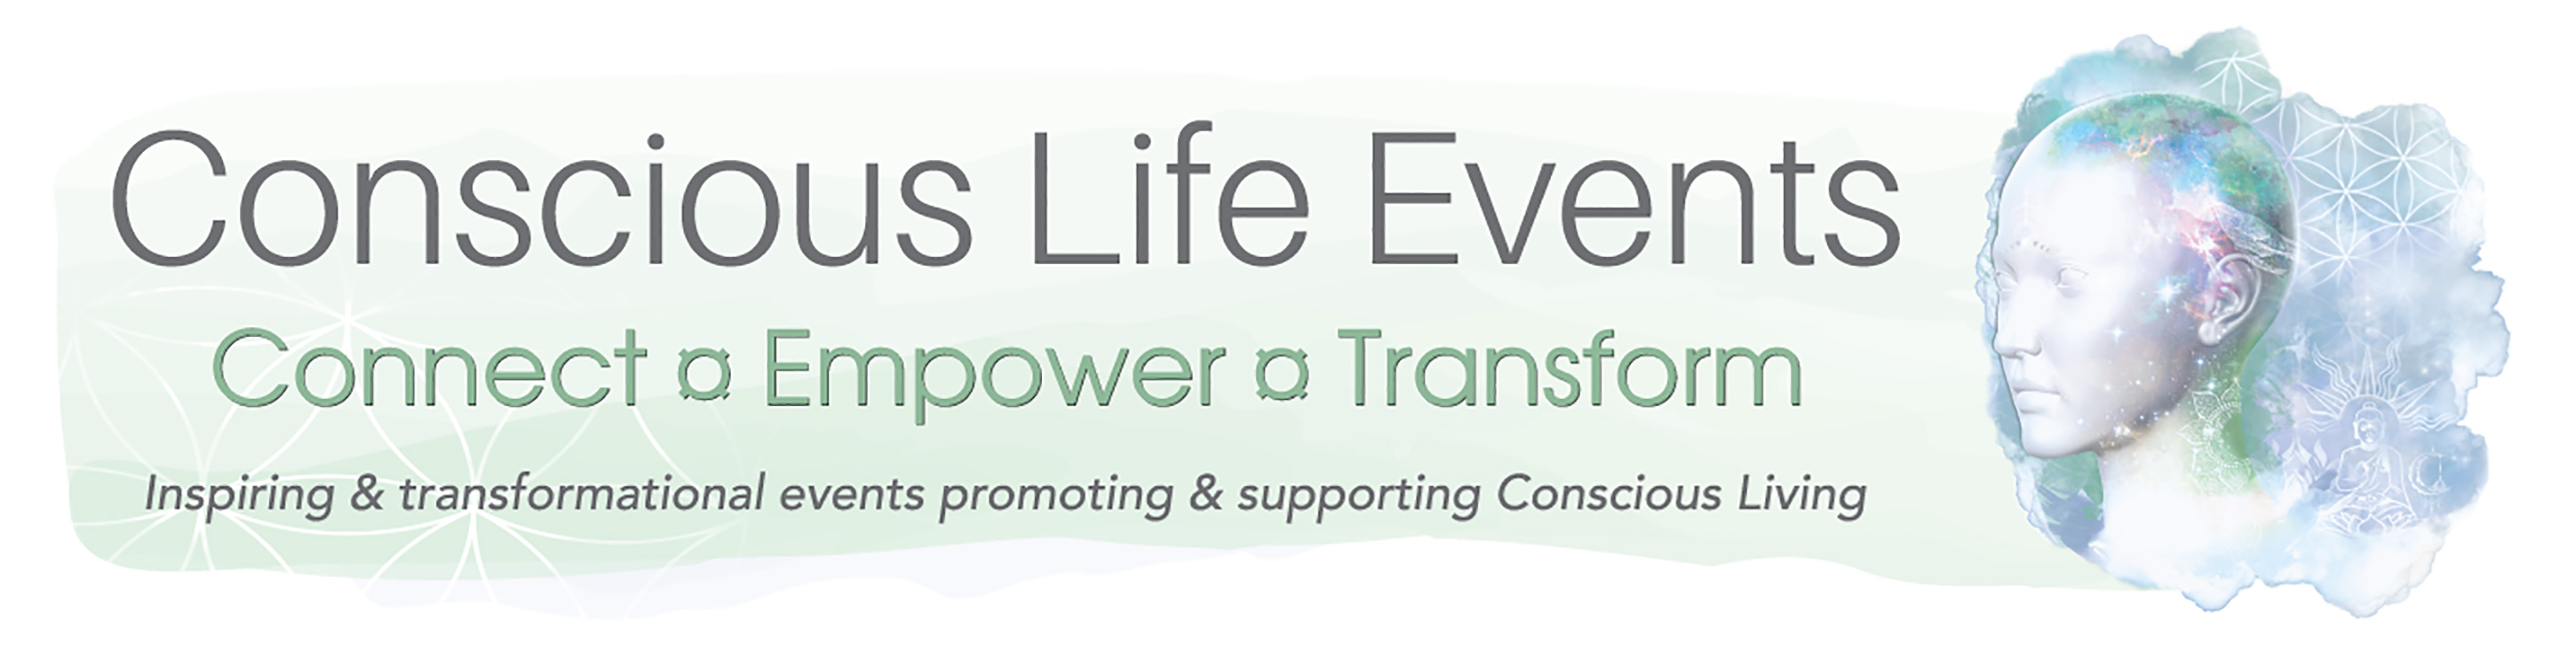 conscious-life-events_website-banner-002